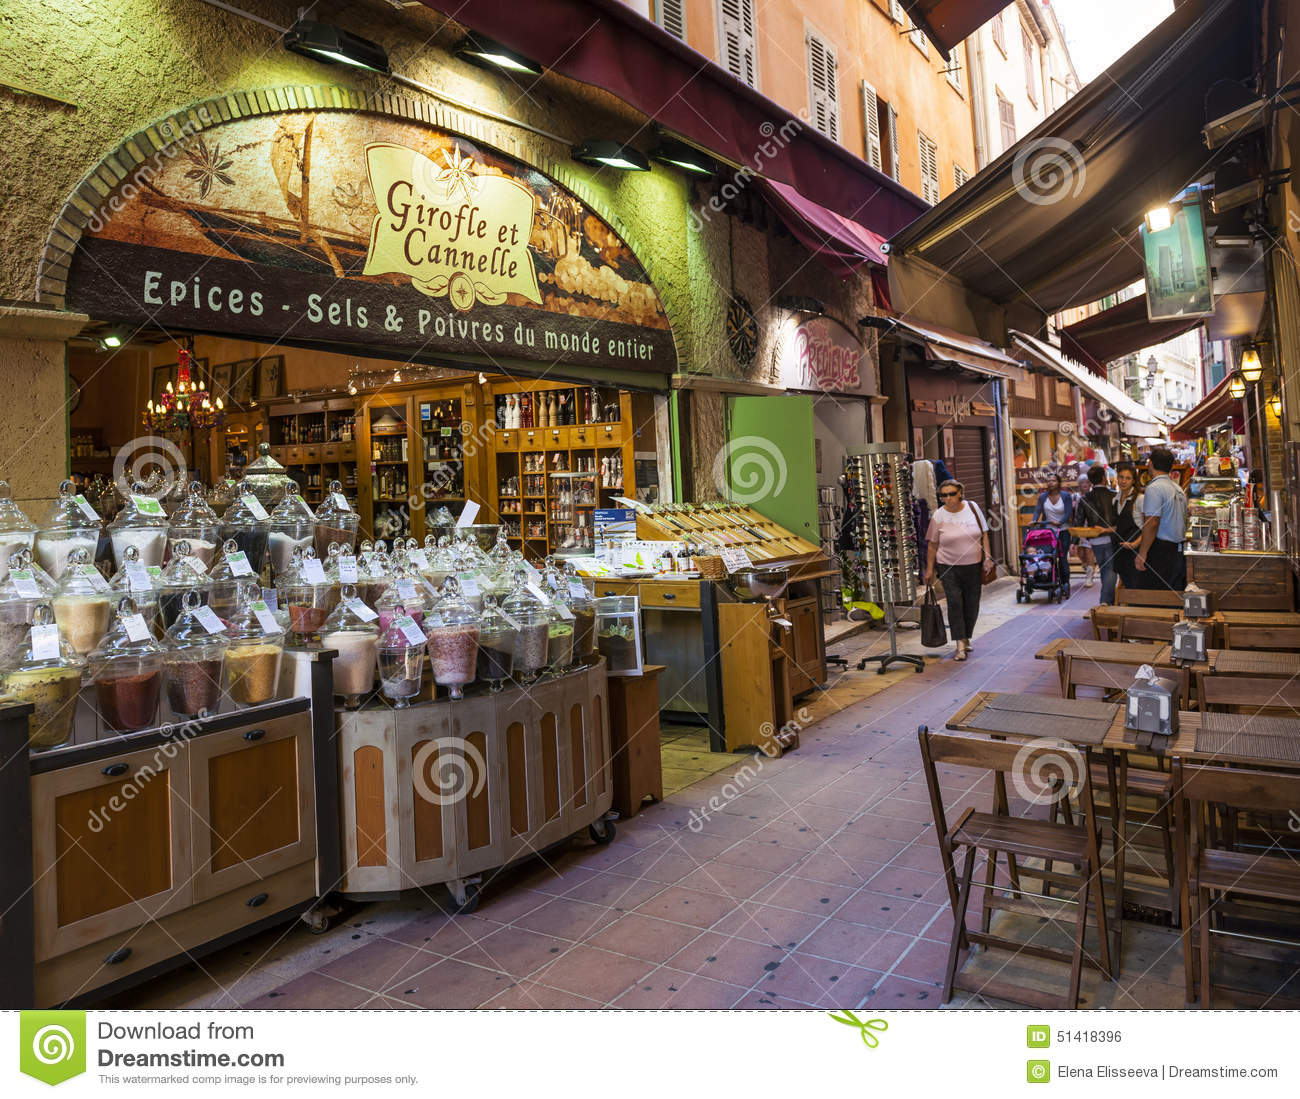 Rue pairoliere in nice france editorial photo image for Shopping cuisine